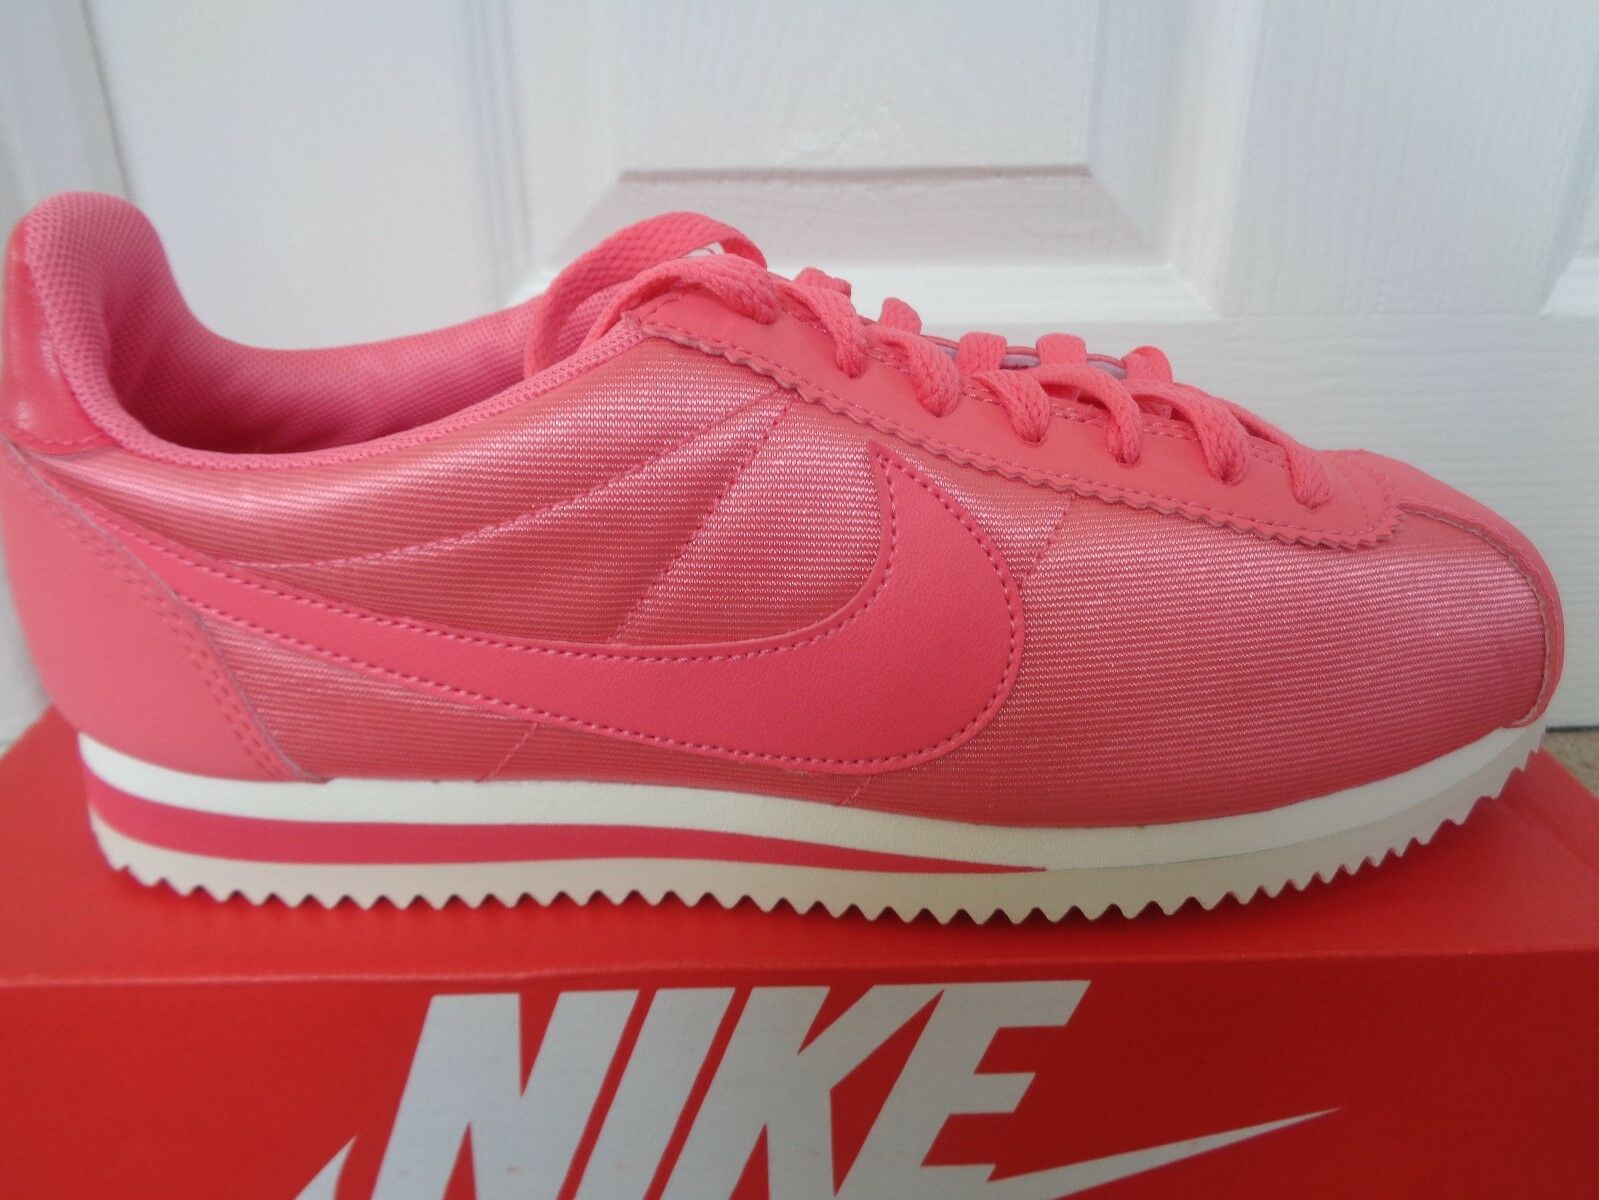 Nike Classic Cortez femmes  trainers sneakers 749864 802 uk 4 eu 37.5 us 6.5 NEW